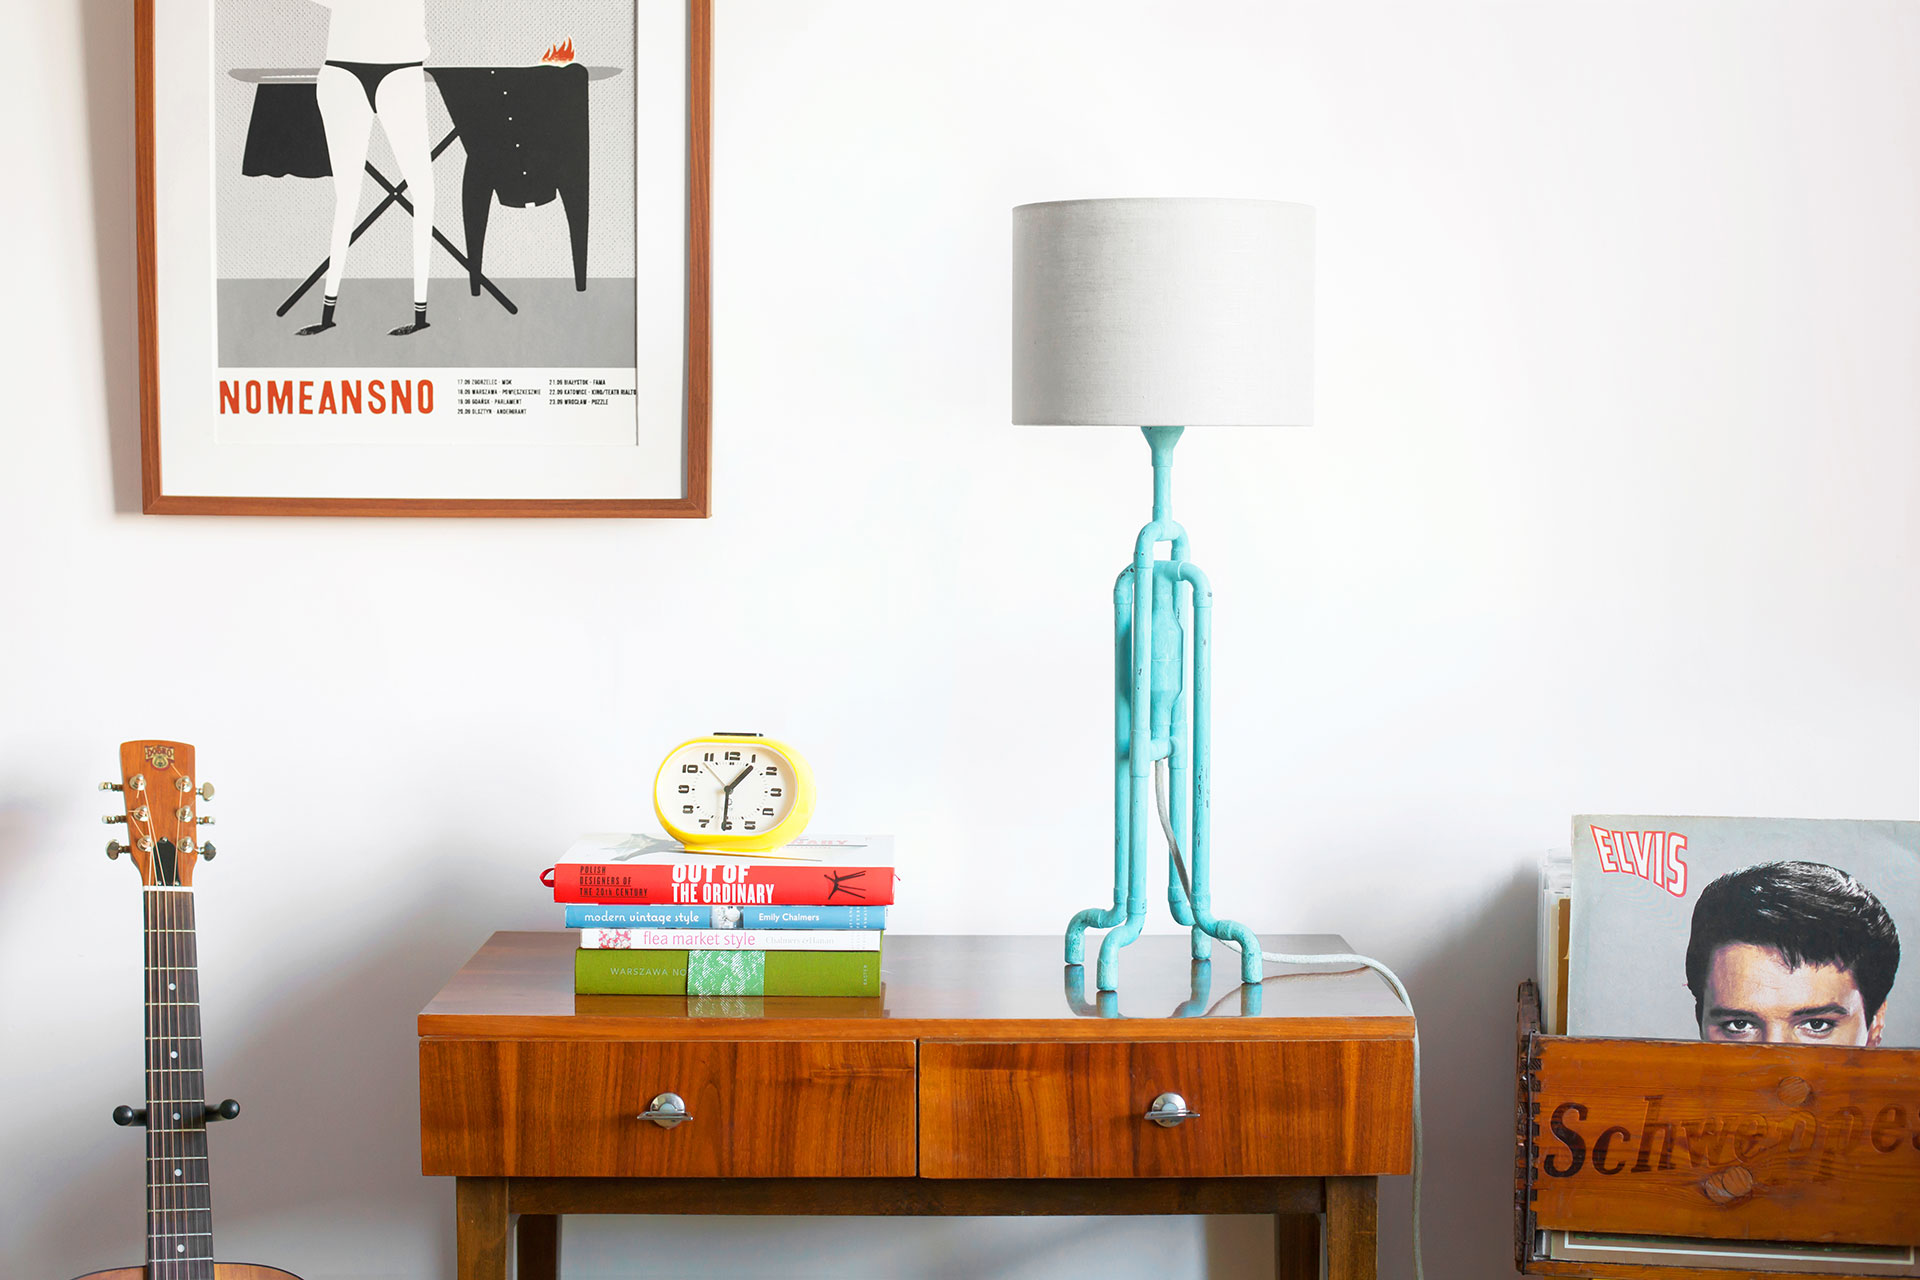 Unique console lamp in trendy turquoise patina with natural linen shade in colorful mid-century modern apartment